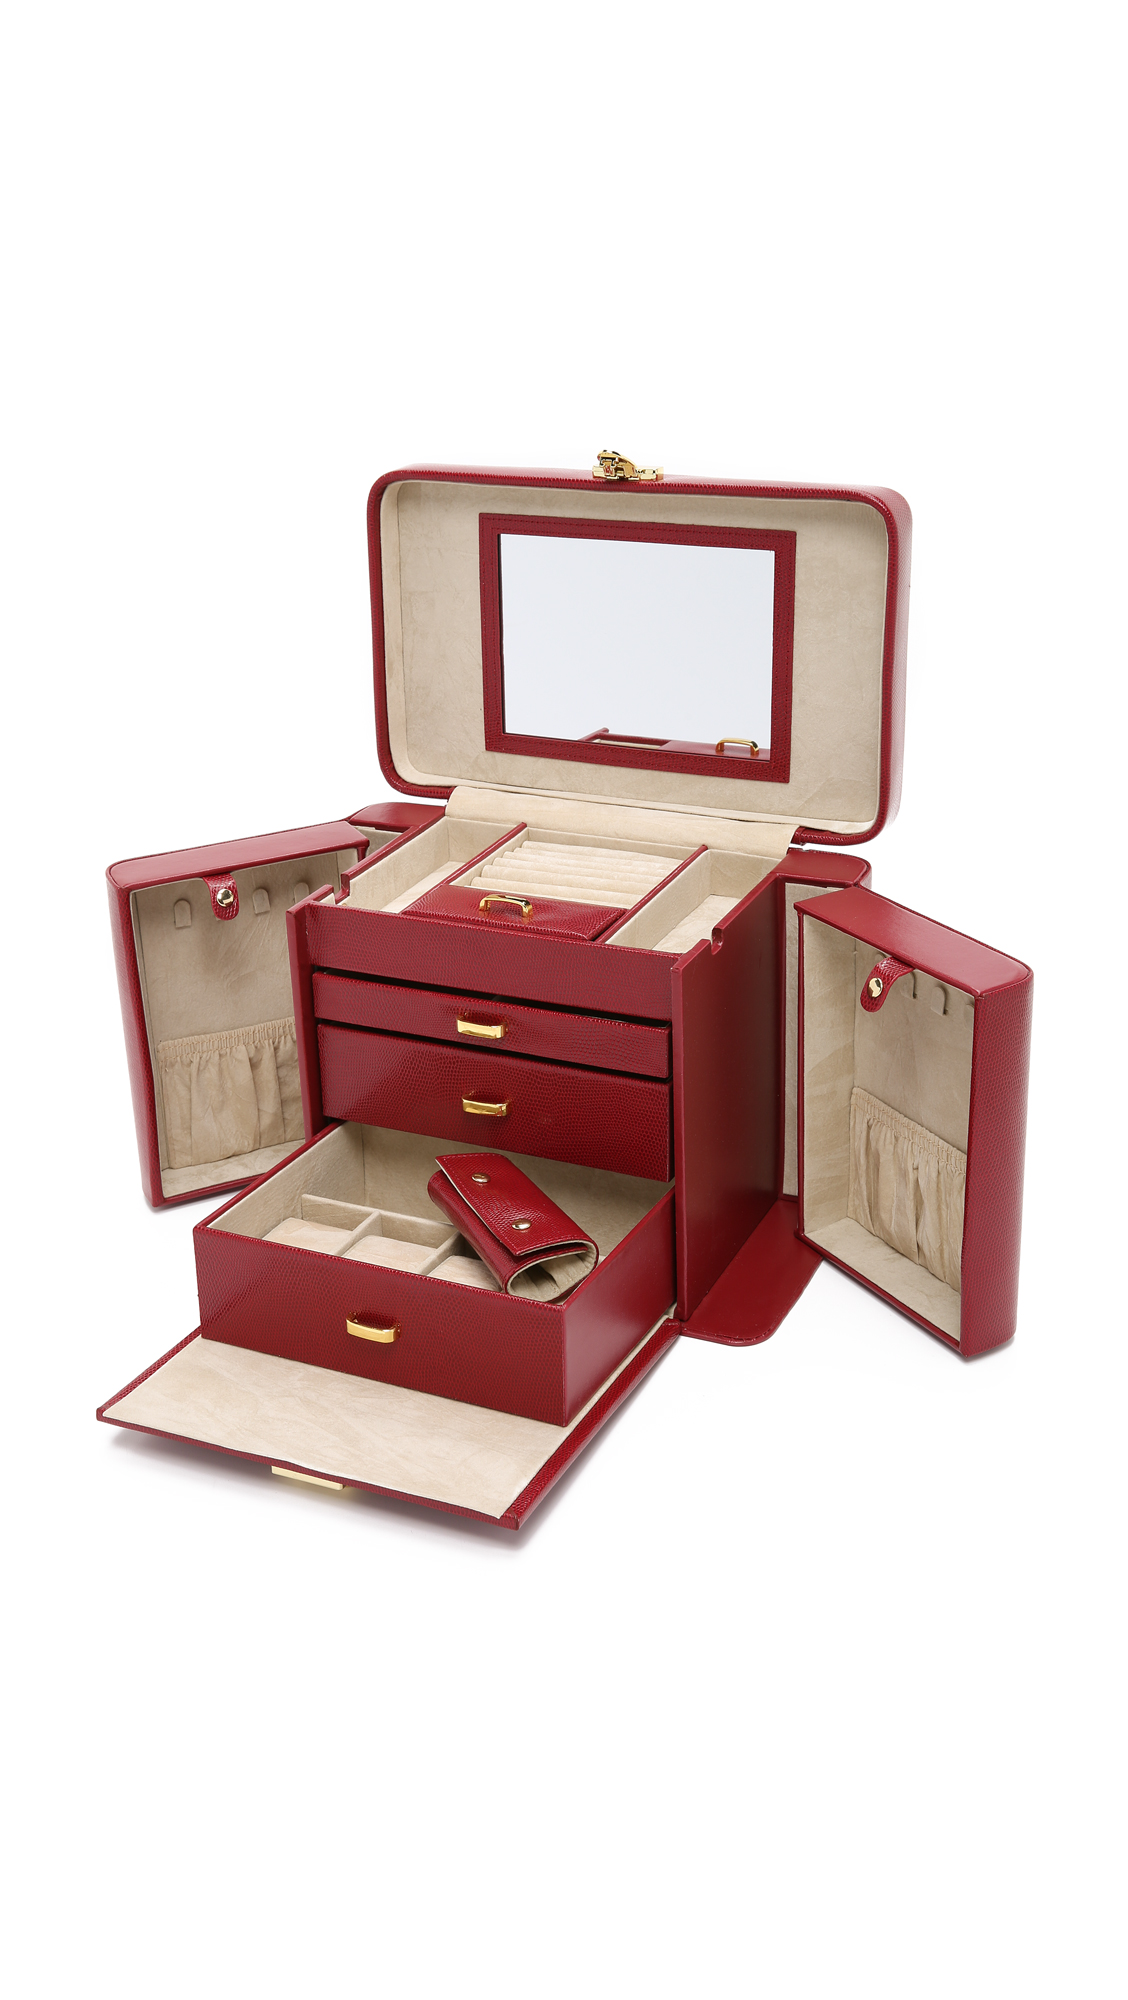 Gift Boutique 4 Level Jewelry Box SHOPBOP